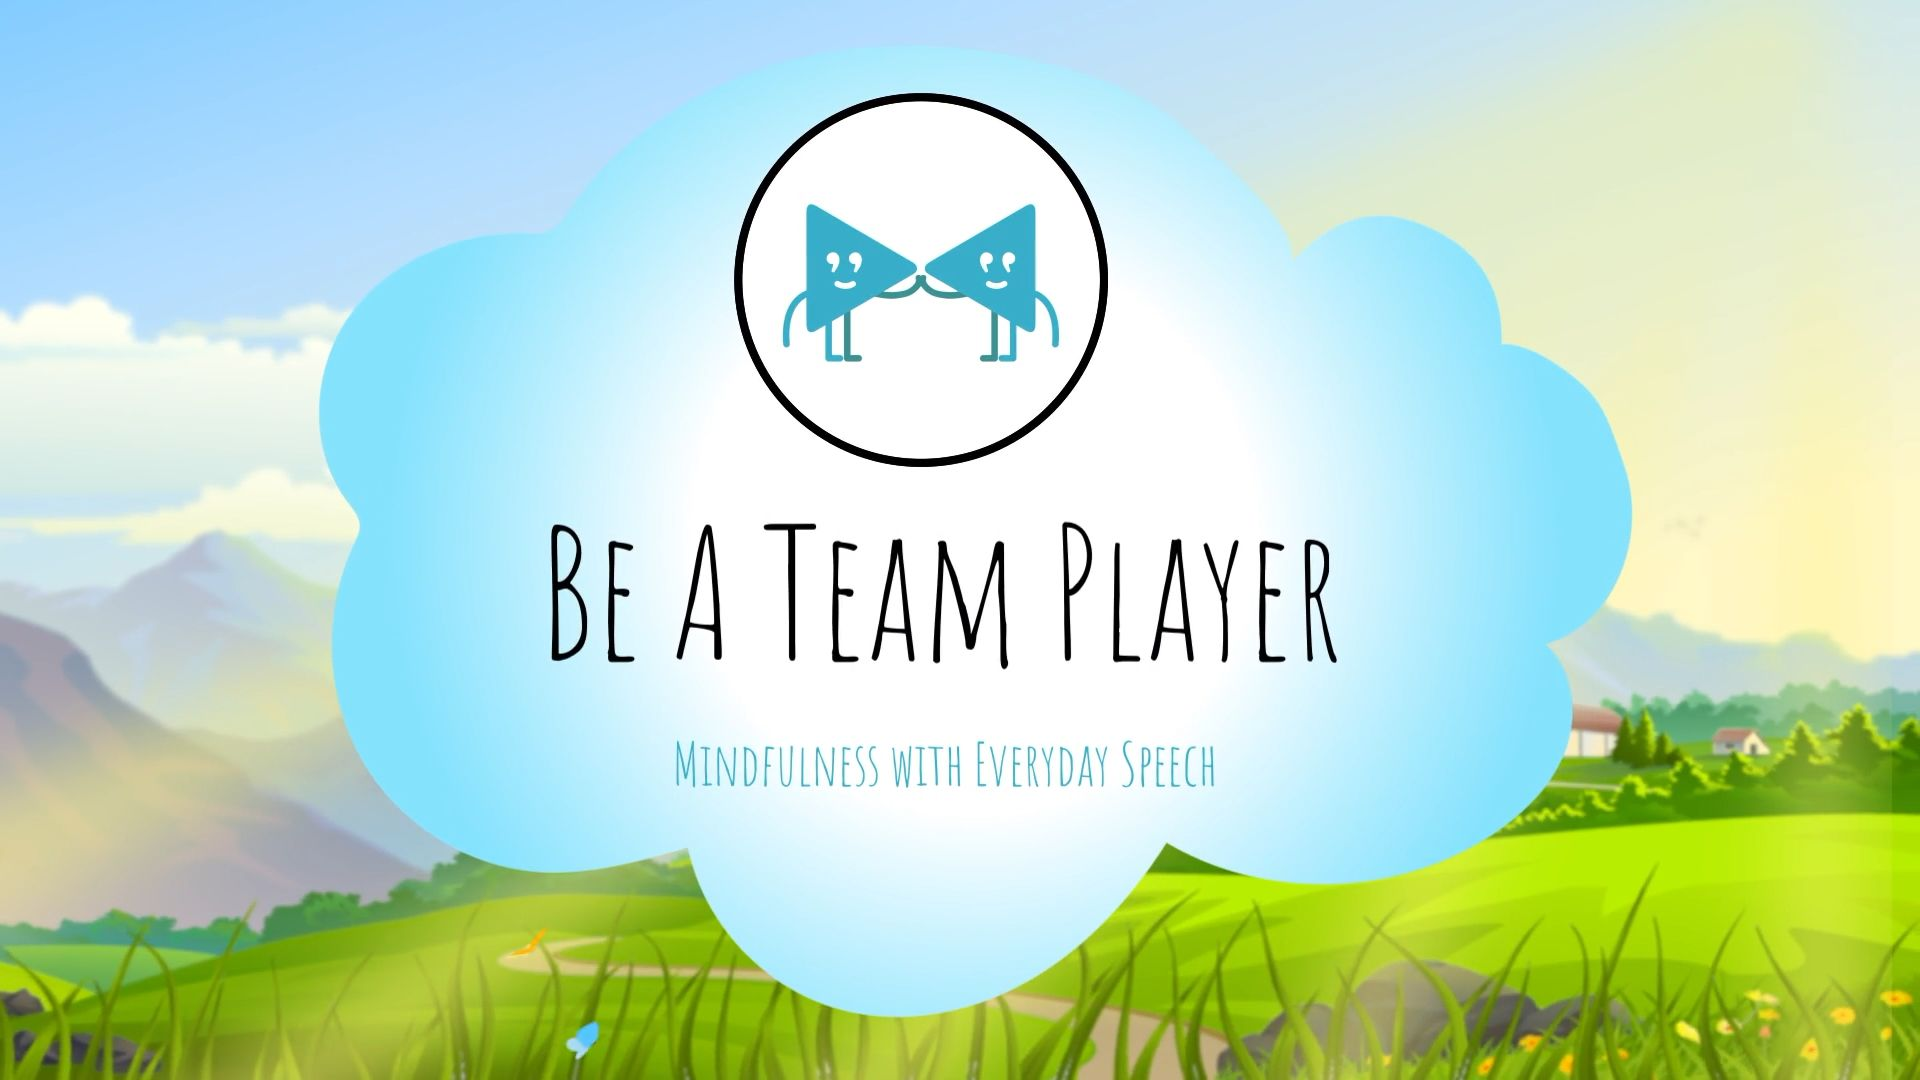 Be a Team Player